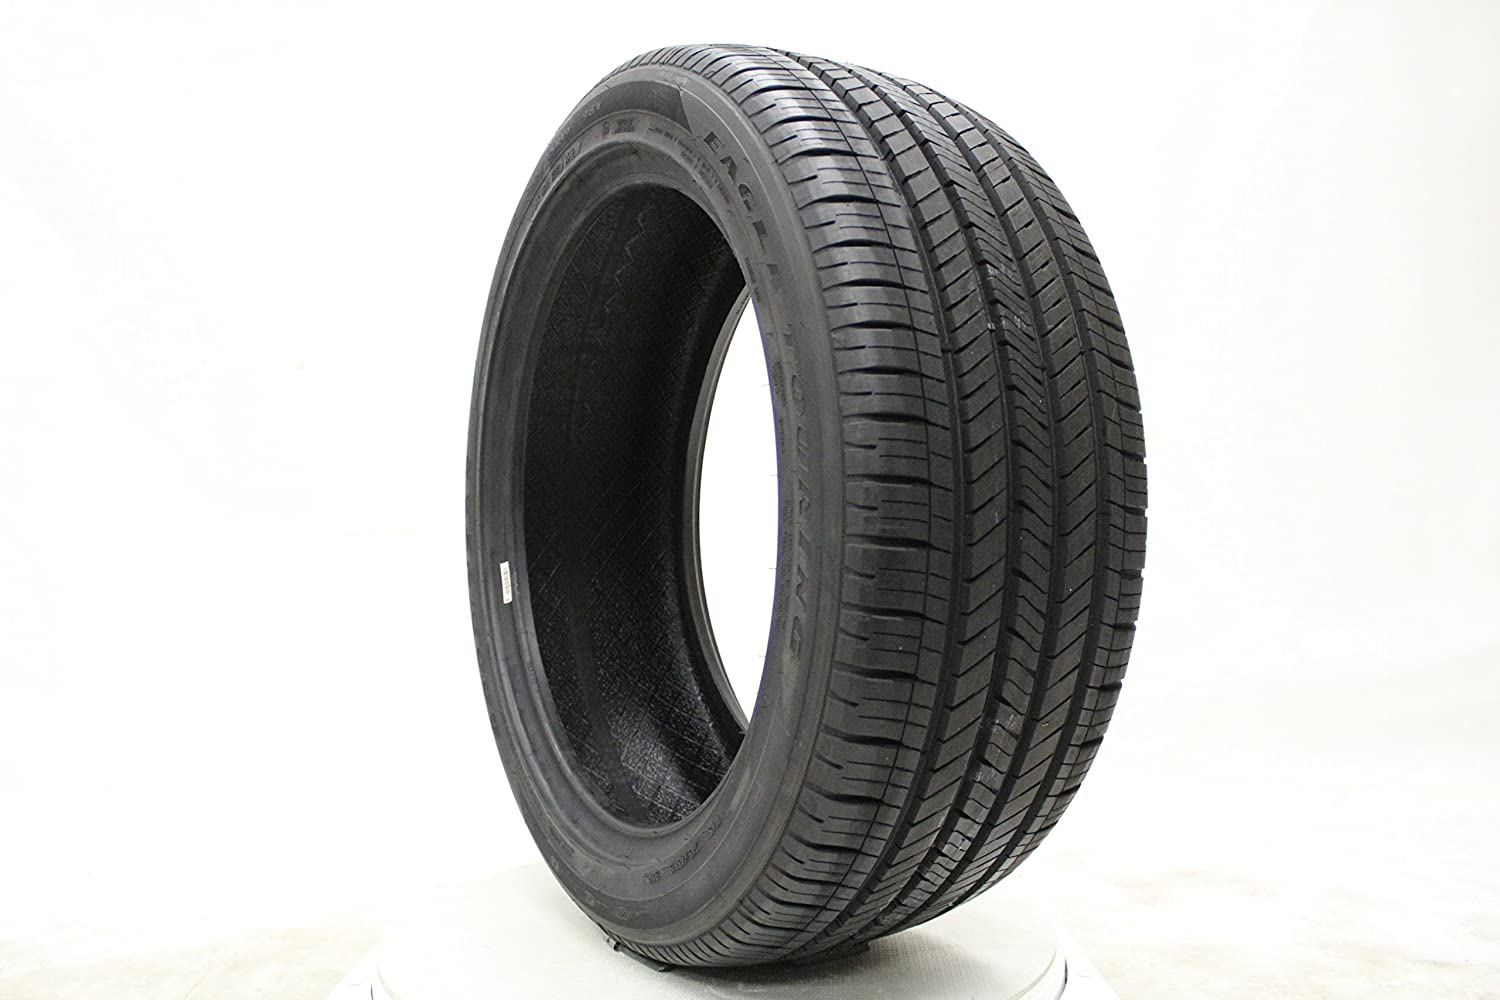 Goodyear Eagle Touring Radial Tire - 235/40R19 96V 102918387